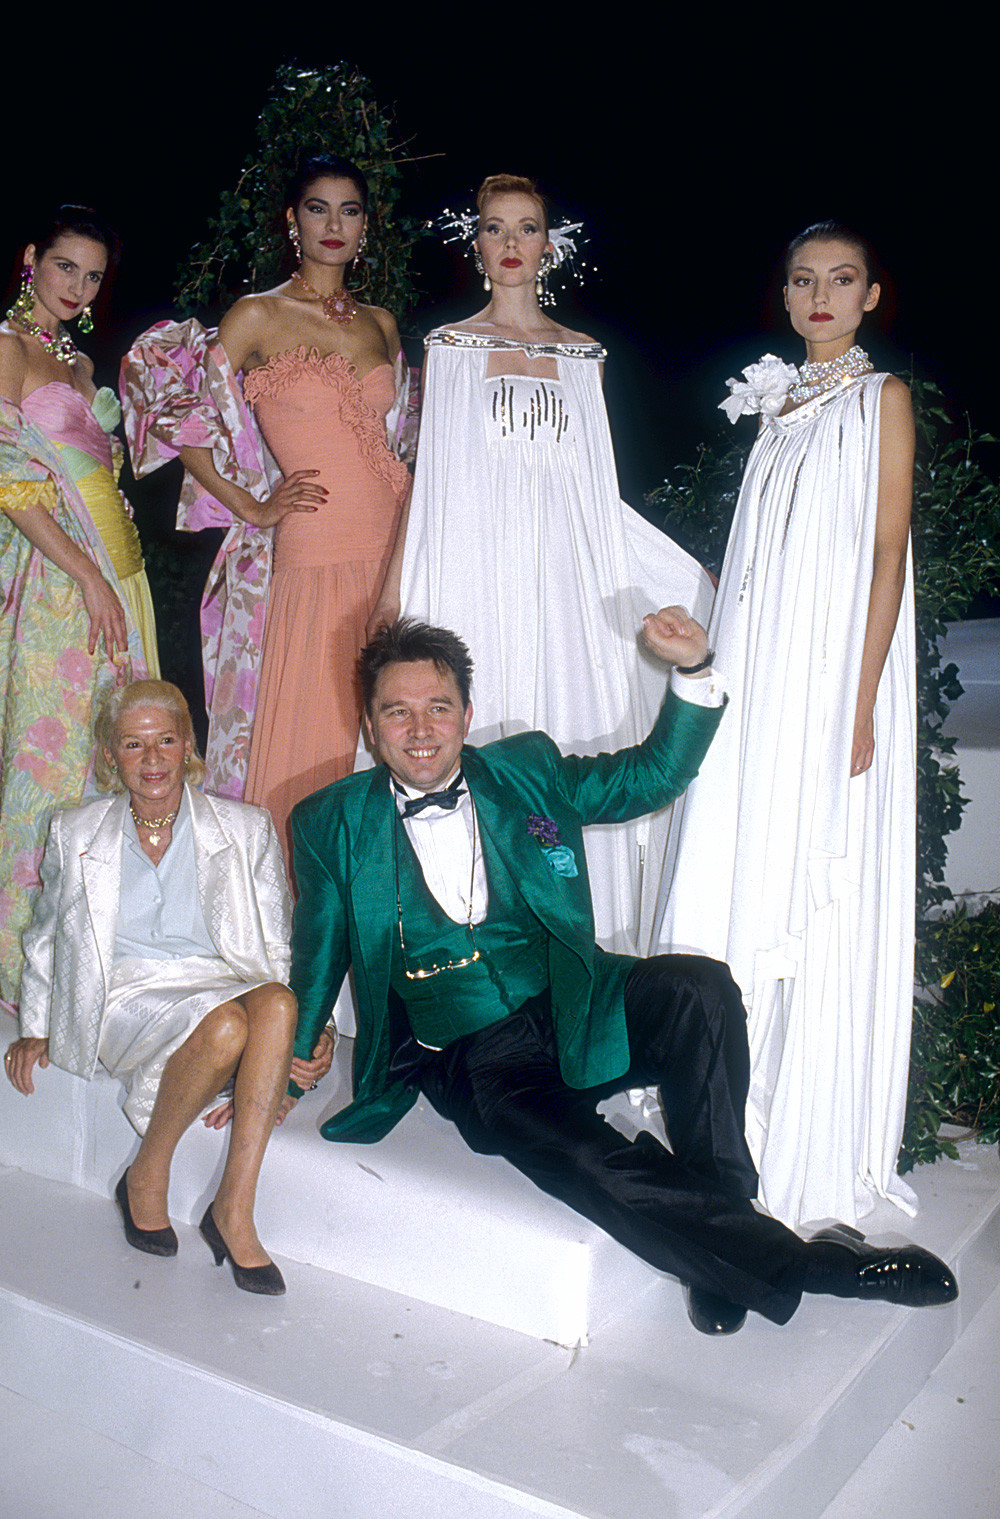 Slava Zaitsev with French fashion designer Madame Carven and models wearing his haute couture evening gowns (Spring-Summer 1988 fashion show in Paris)